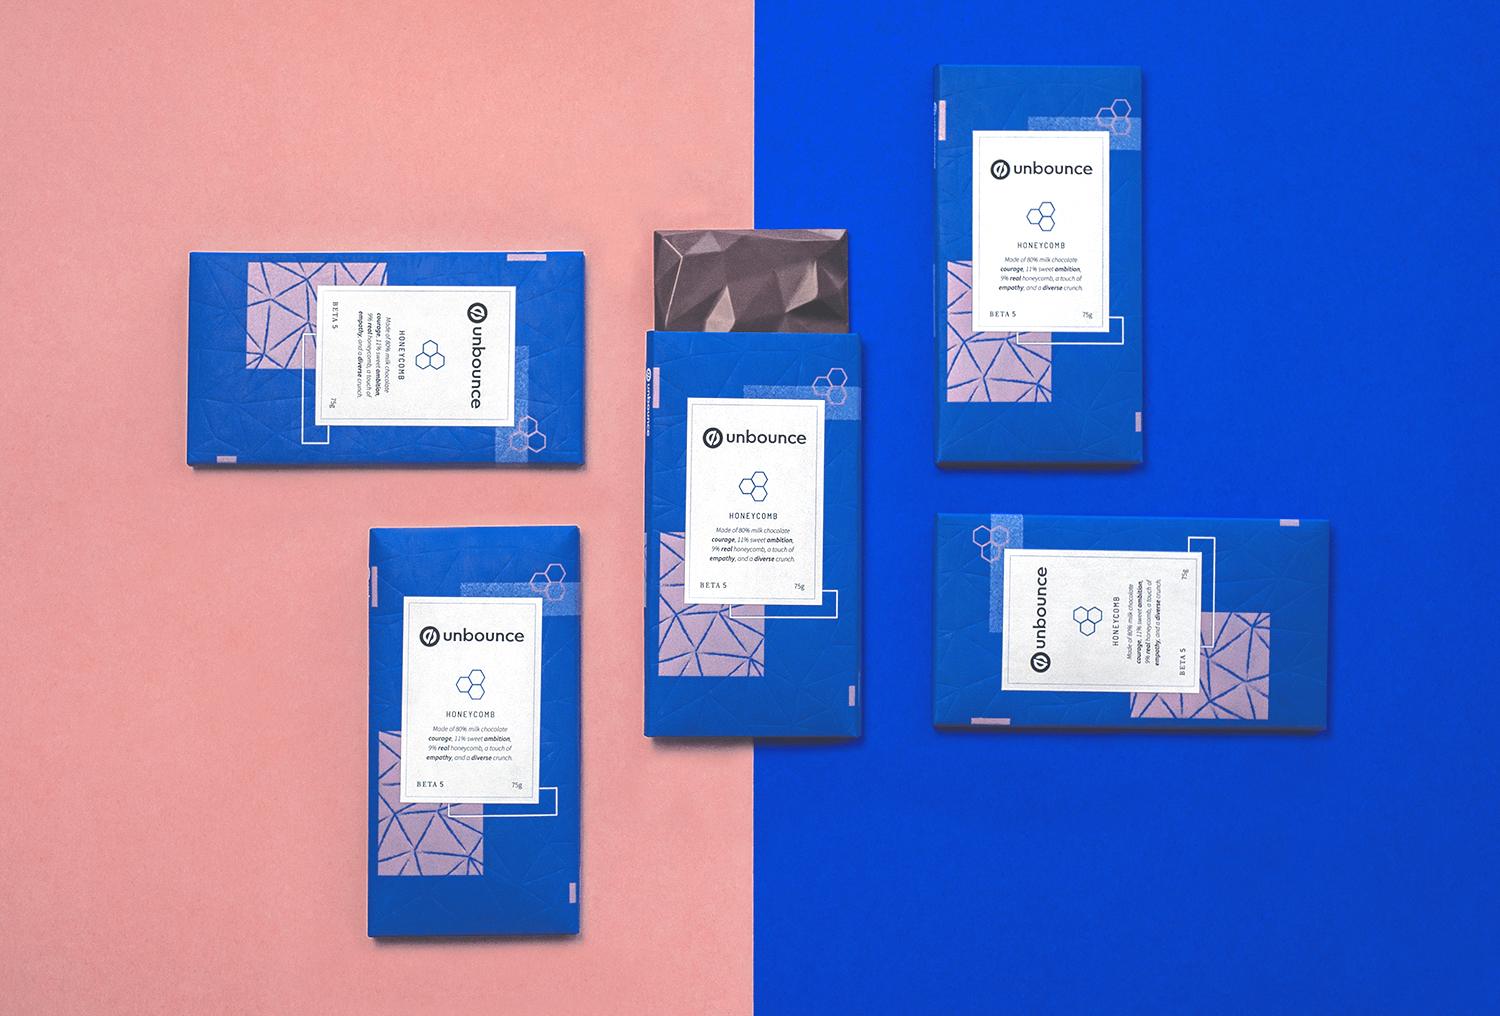 Inspired by MailChimp's internal brand reveal, 2 of our branded chocolate bars contained Golden Tickets for staff to find and win vacations with.